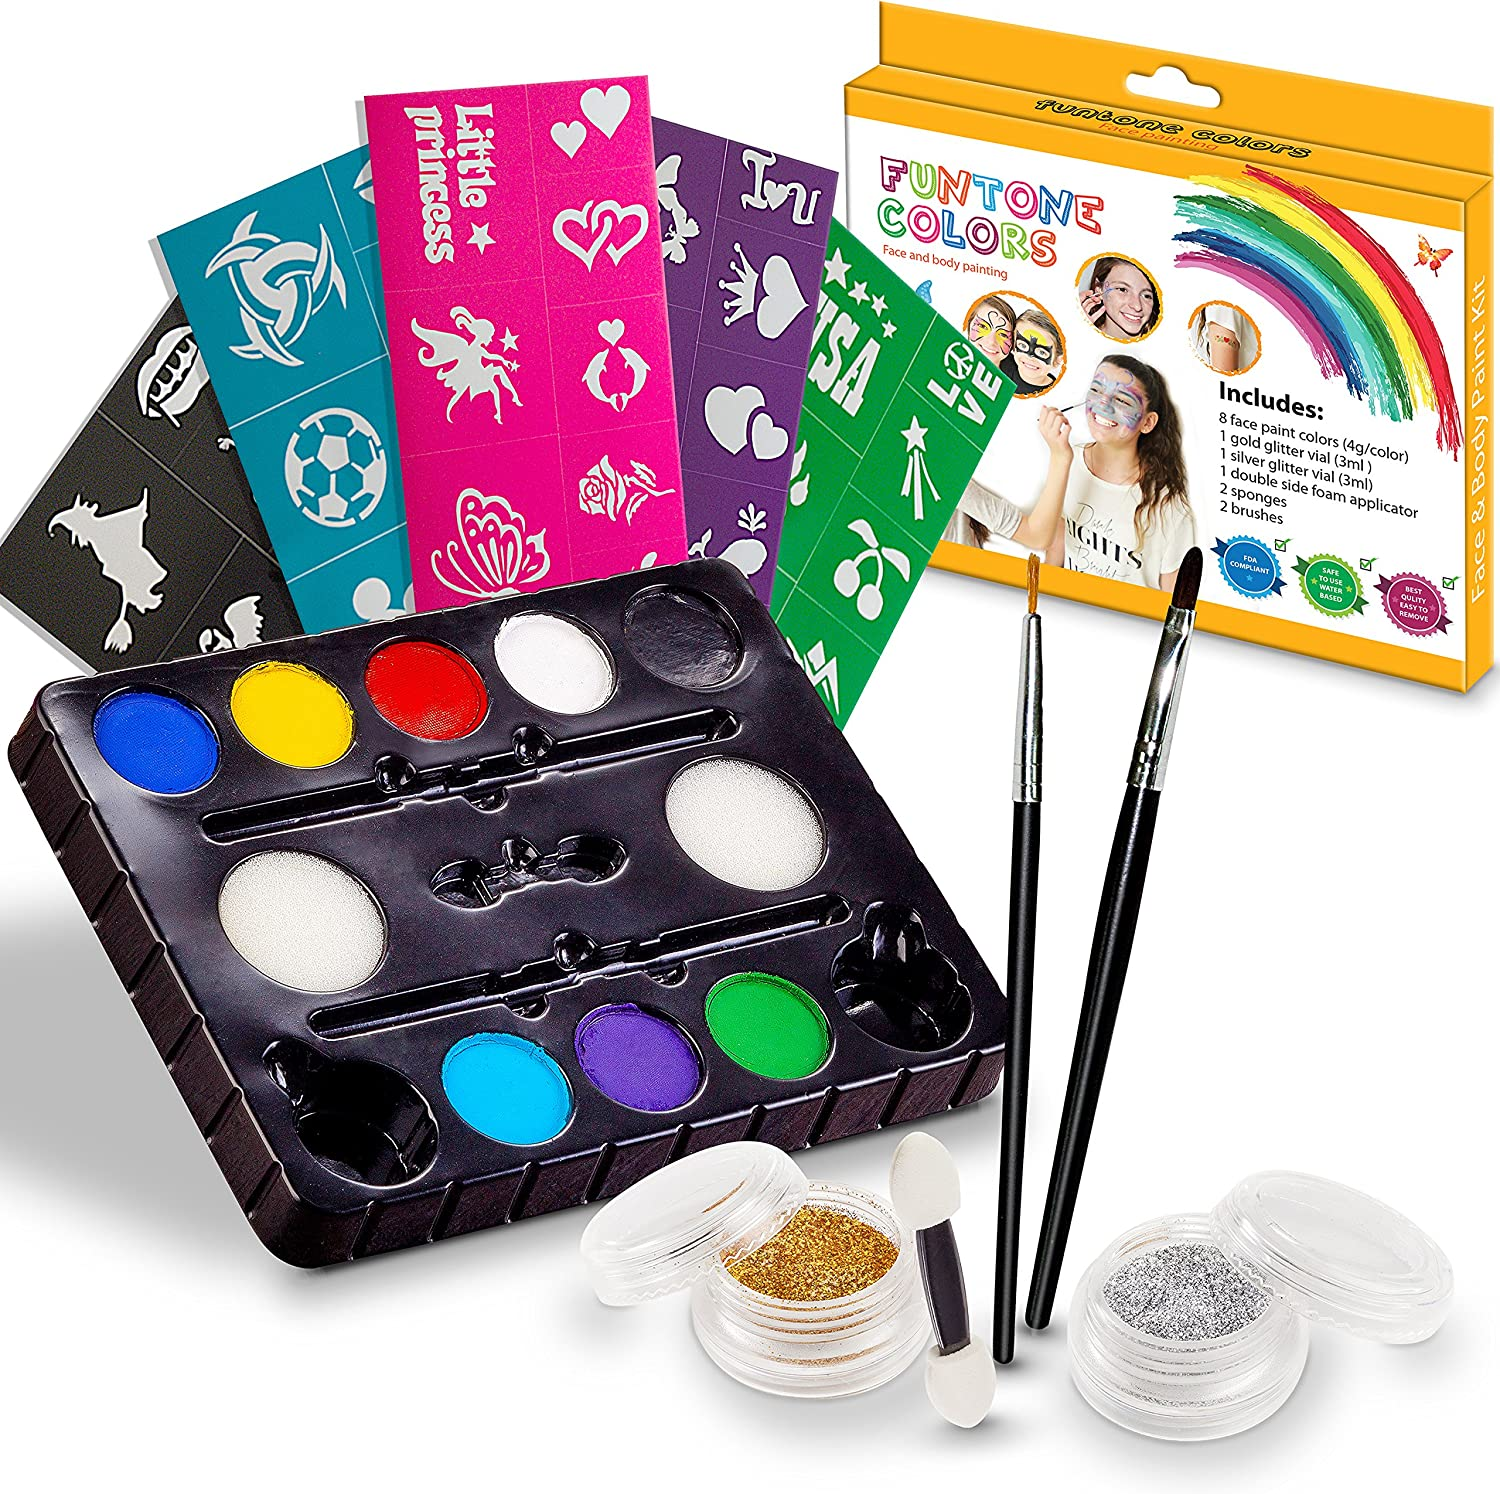 Face Painting Kits Free 40 Stencils Included Used For Body Painting Parties Halloween Or Kids Makeup Funtone Colors Face Painting Contains Palette 8 Colors Glitter Brushes Sponges Amazon Ca Toys Games